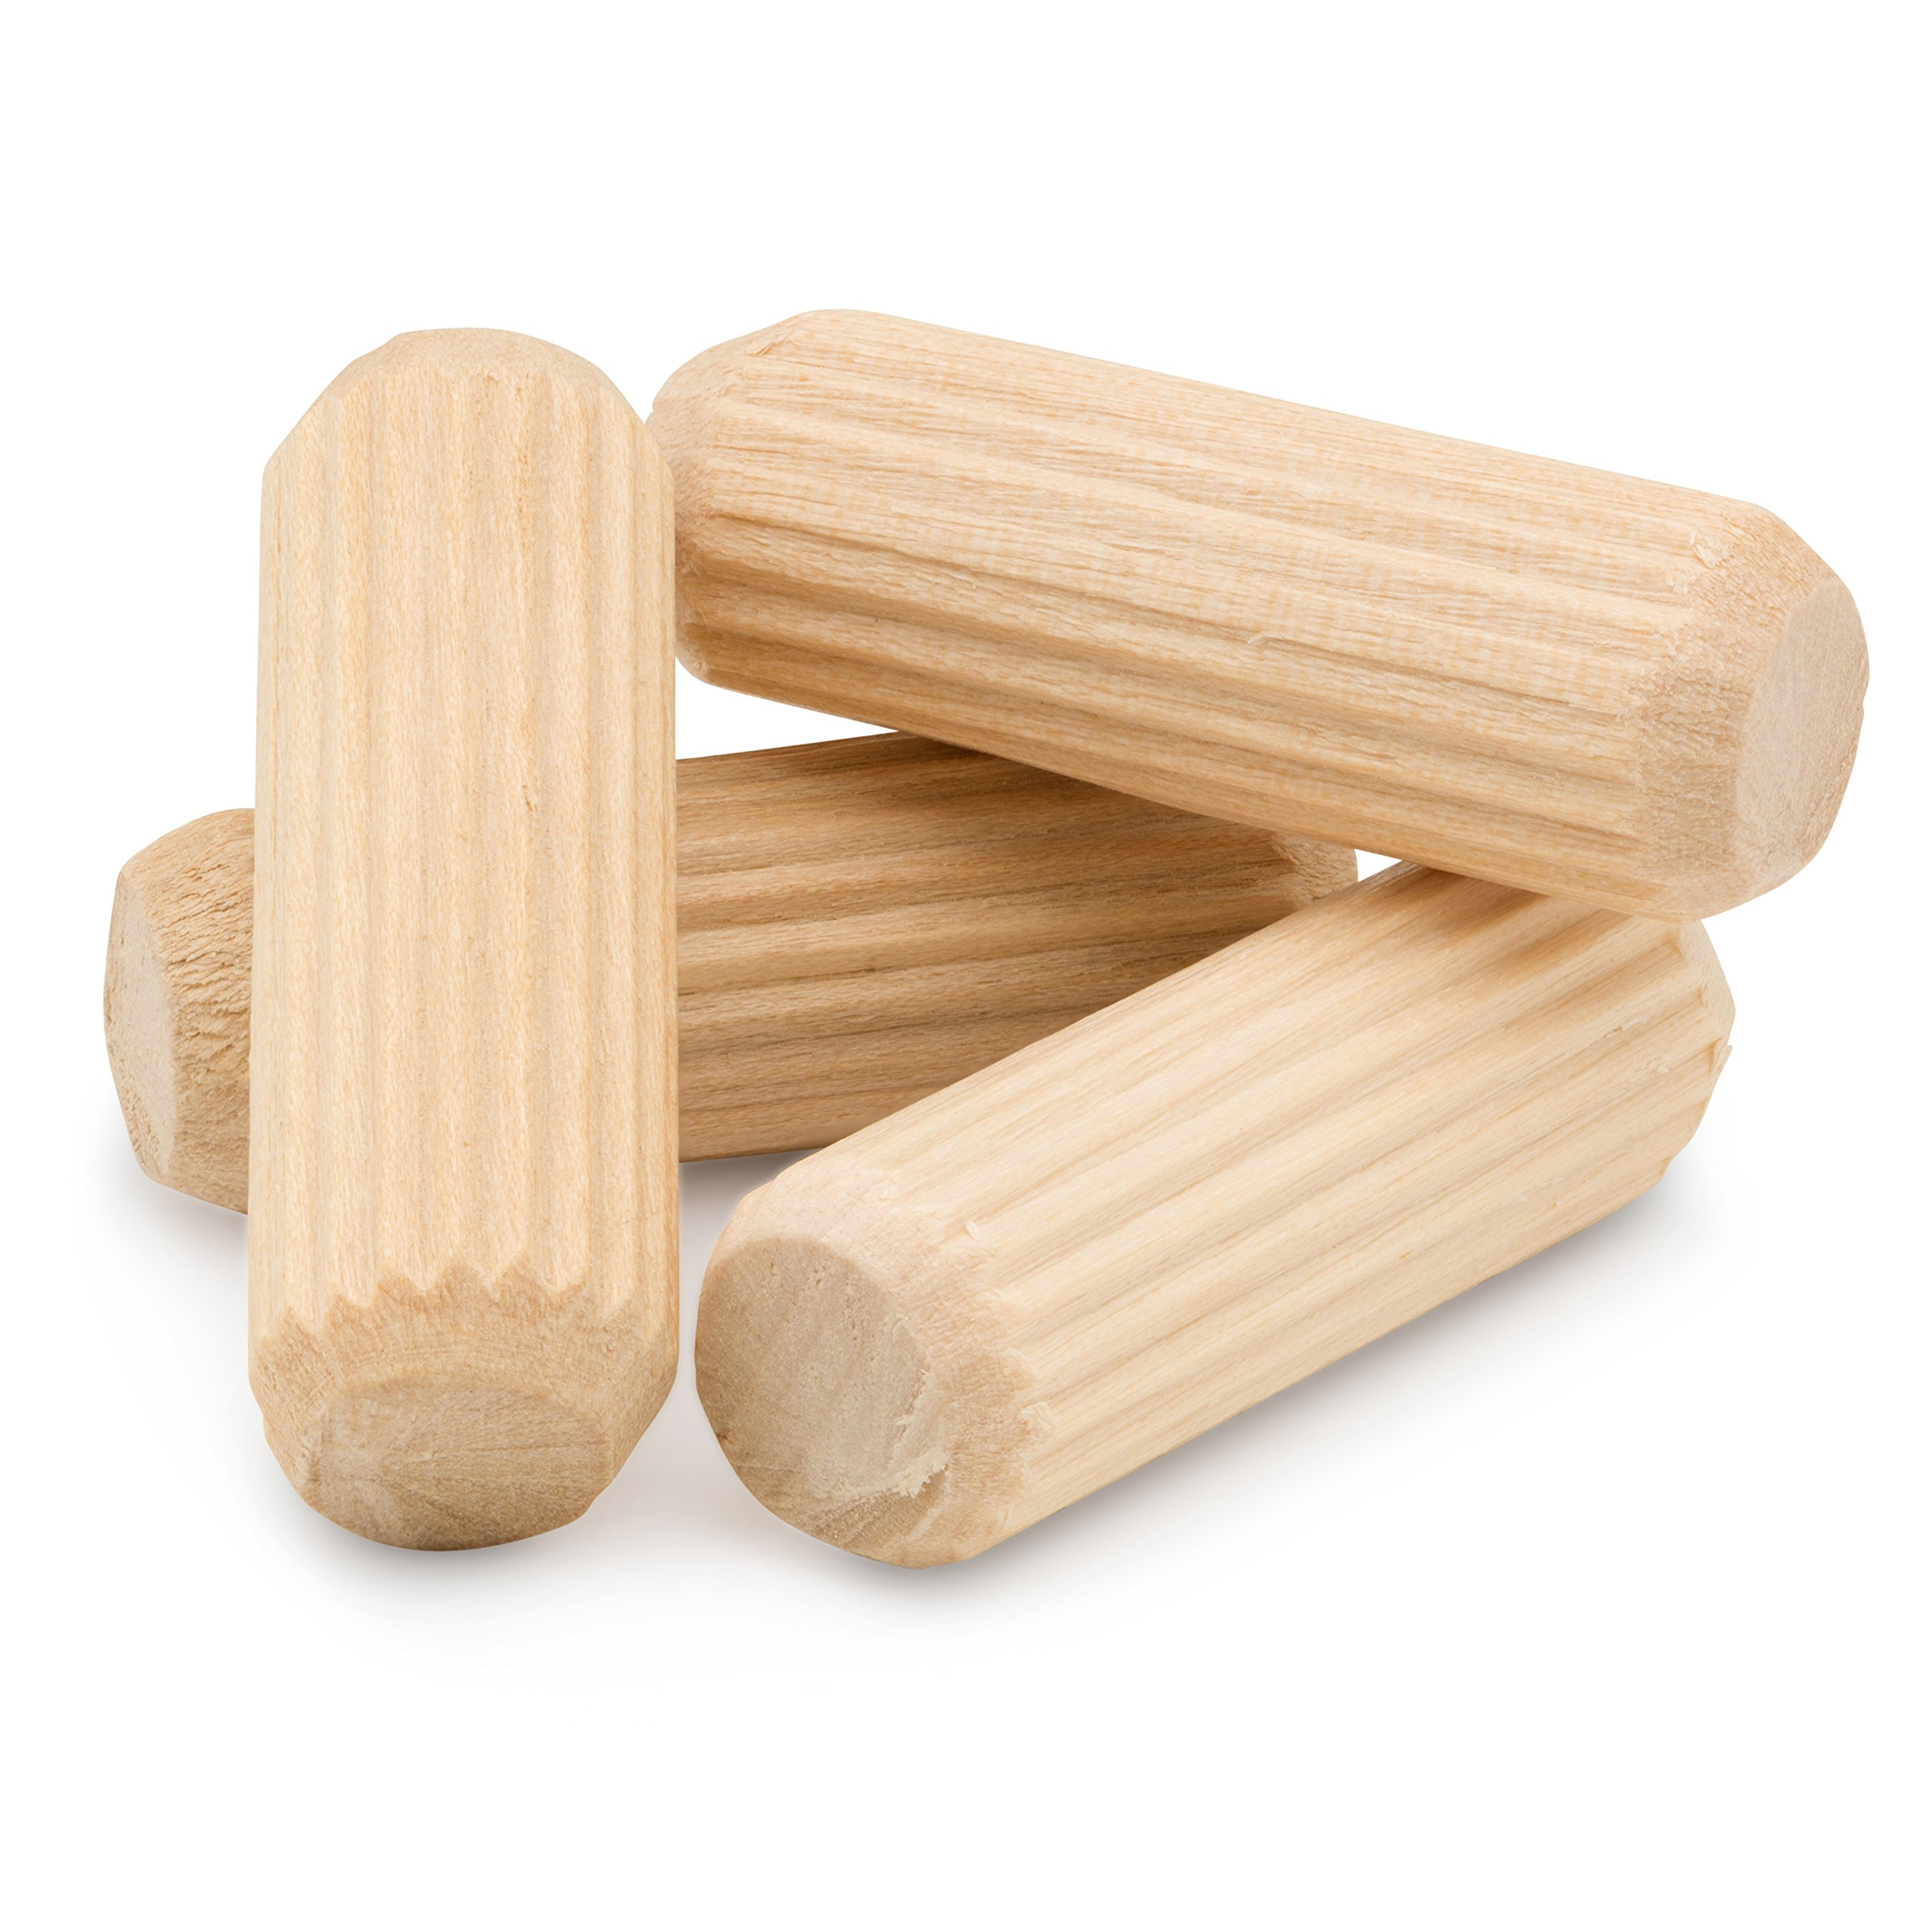 Wood Dowel Pins 3/8'' x 1-1/2'' - Pack of 250 Straight Fluted Hardwood Dowel Pins with Beveled Ends Tapered for Easier Insertion - by Woodpeckers